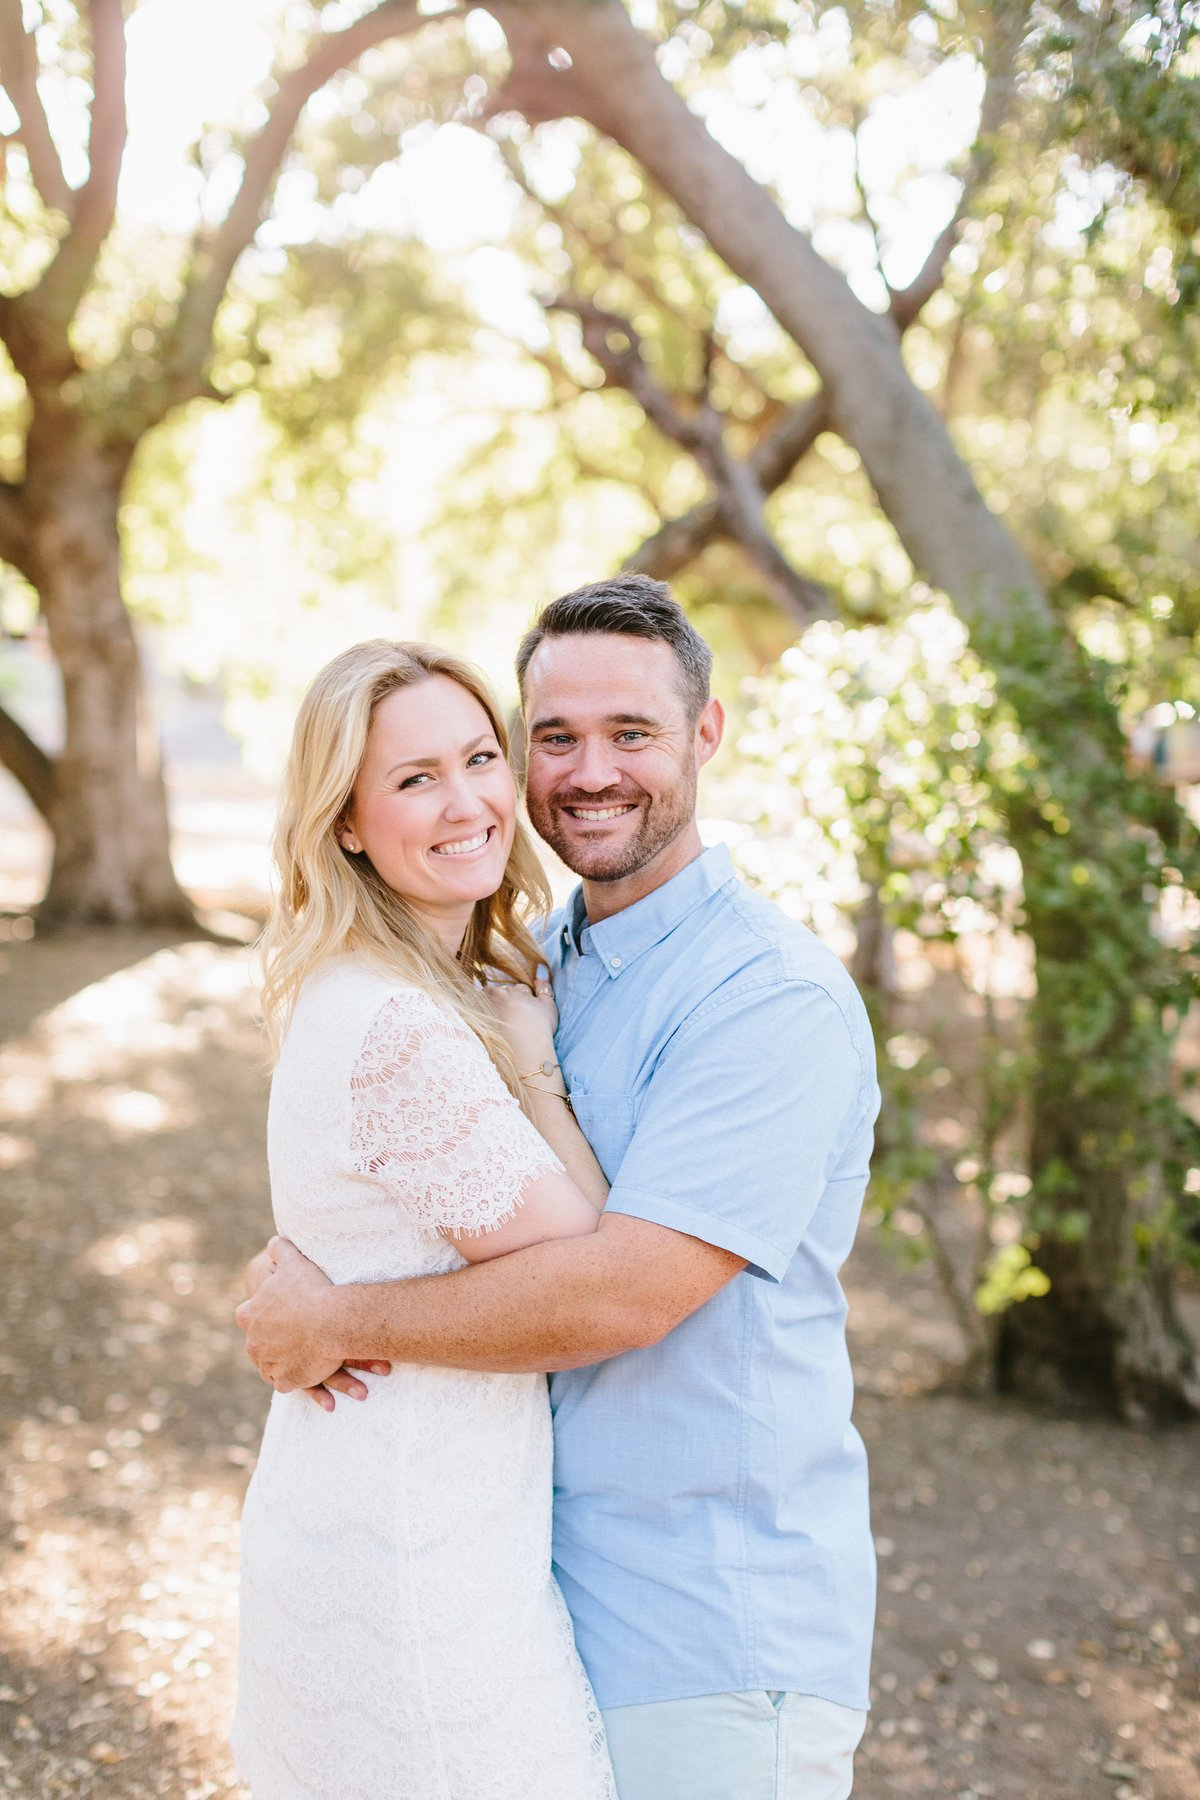 Best California Engagement Photographer_Jodee Debes Photography_140